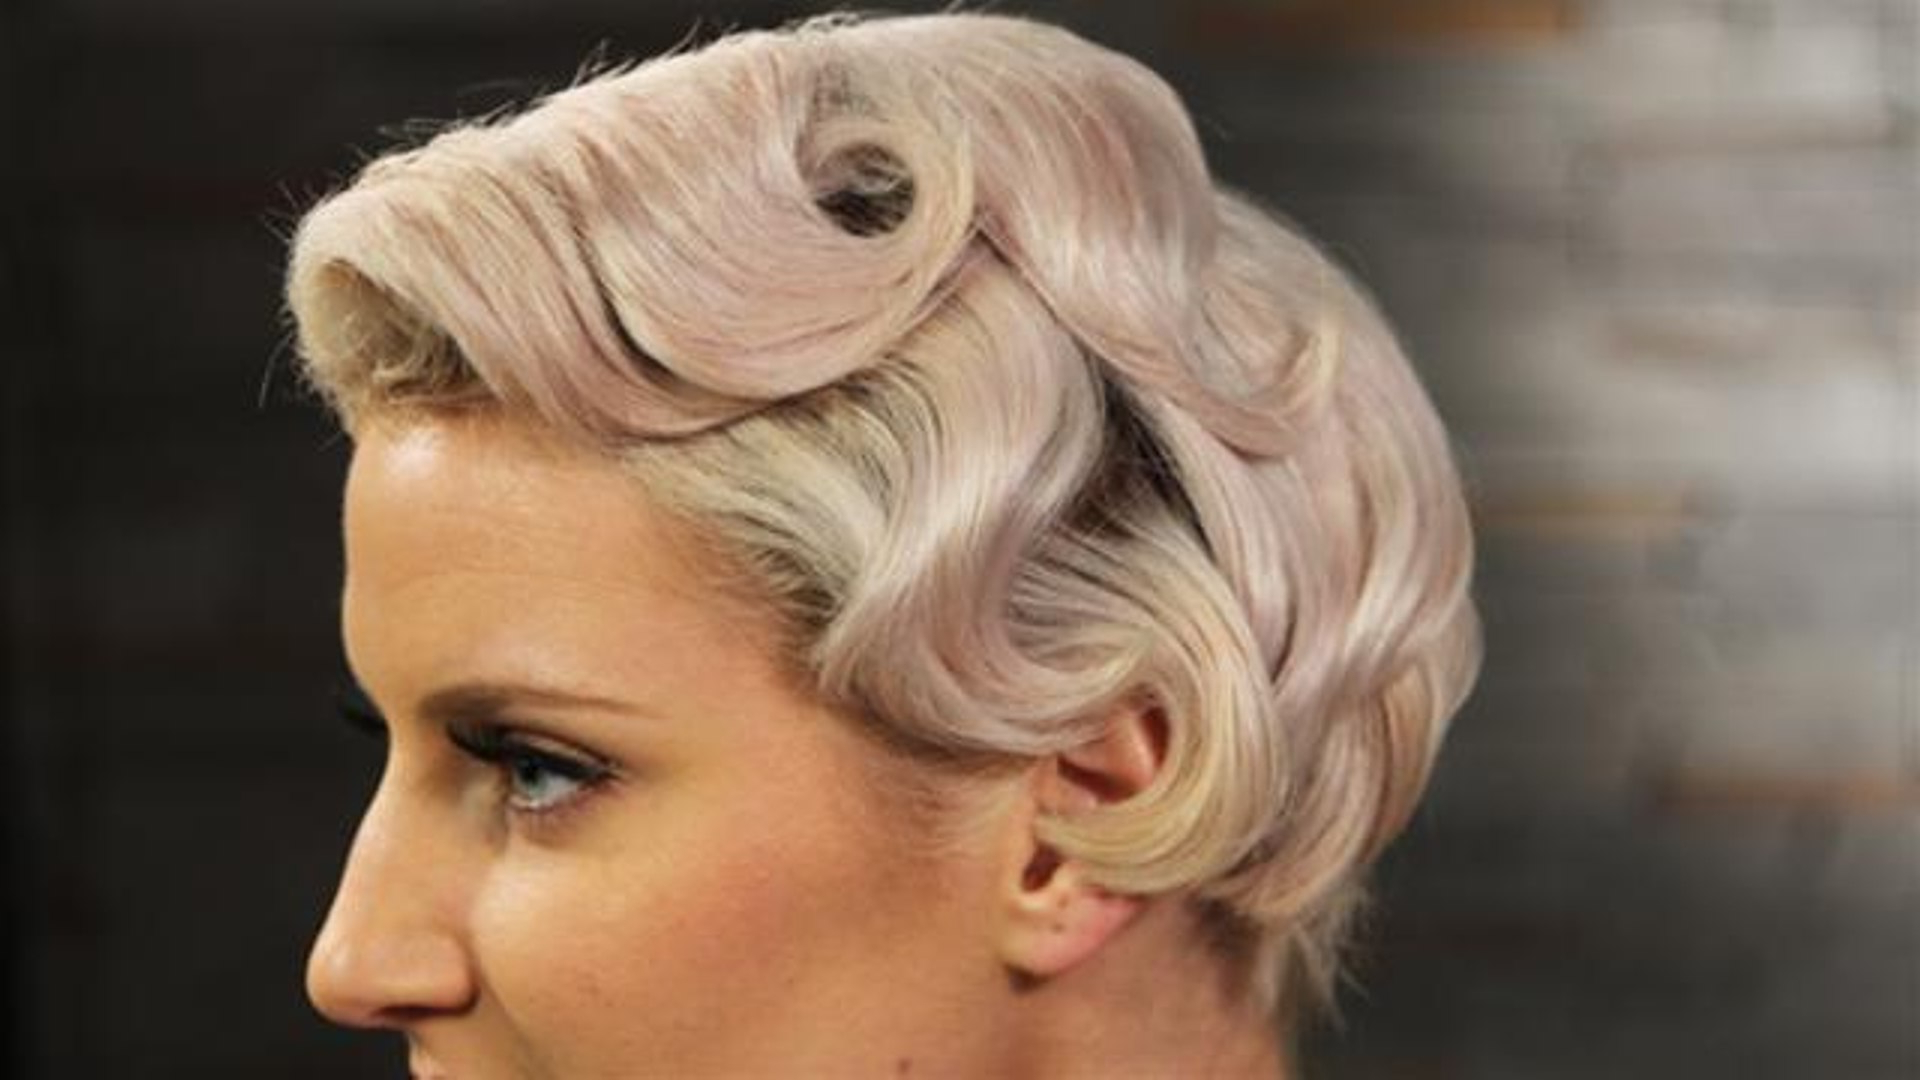 How To Style 1920S Short Hair – Video Dailymotion Throughout 20S Short Hairstyles (View 2 of 25)